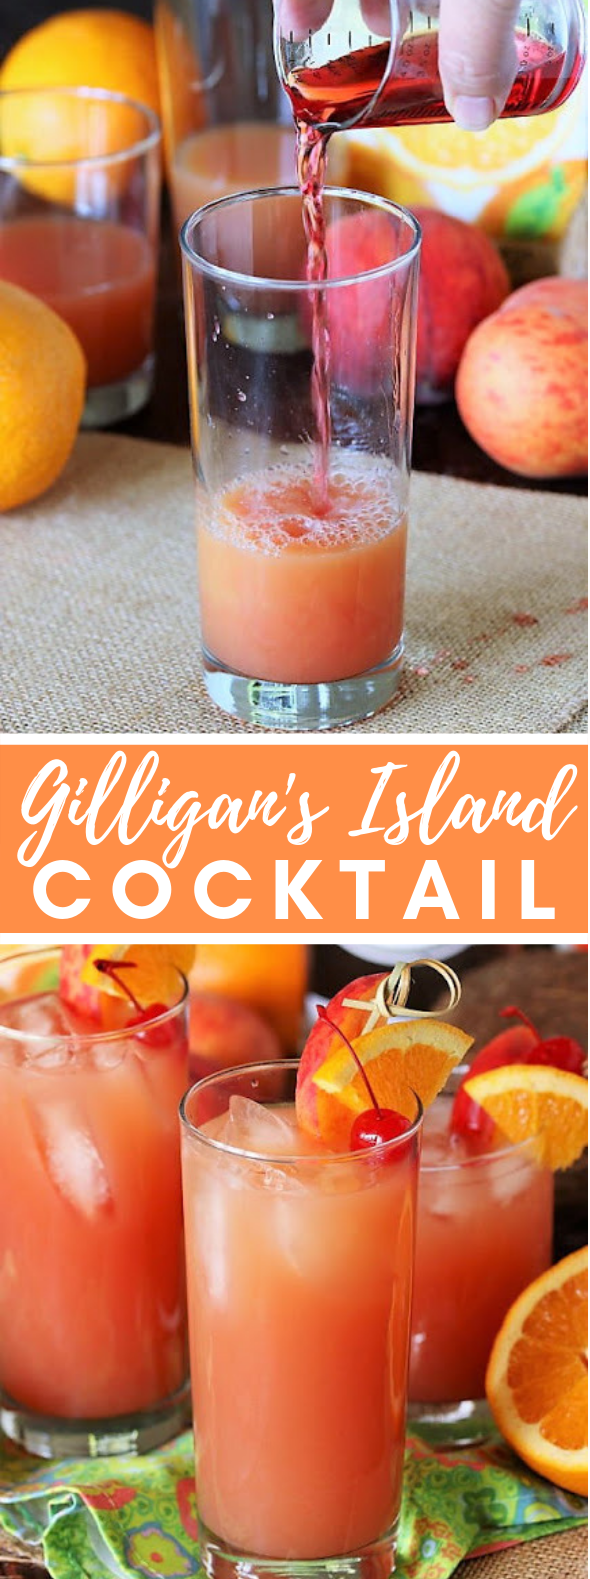 GILLIGAN'S ISLAND COCKTAIL #drinks #tropicalcocktail